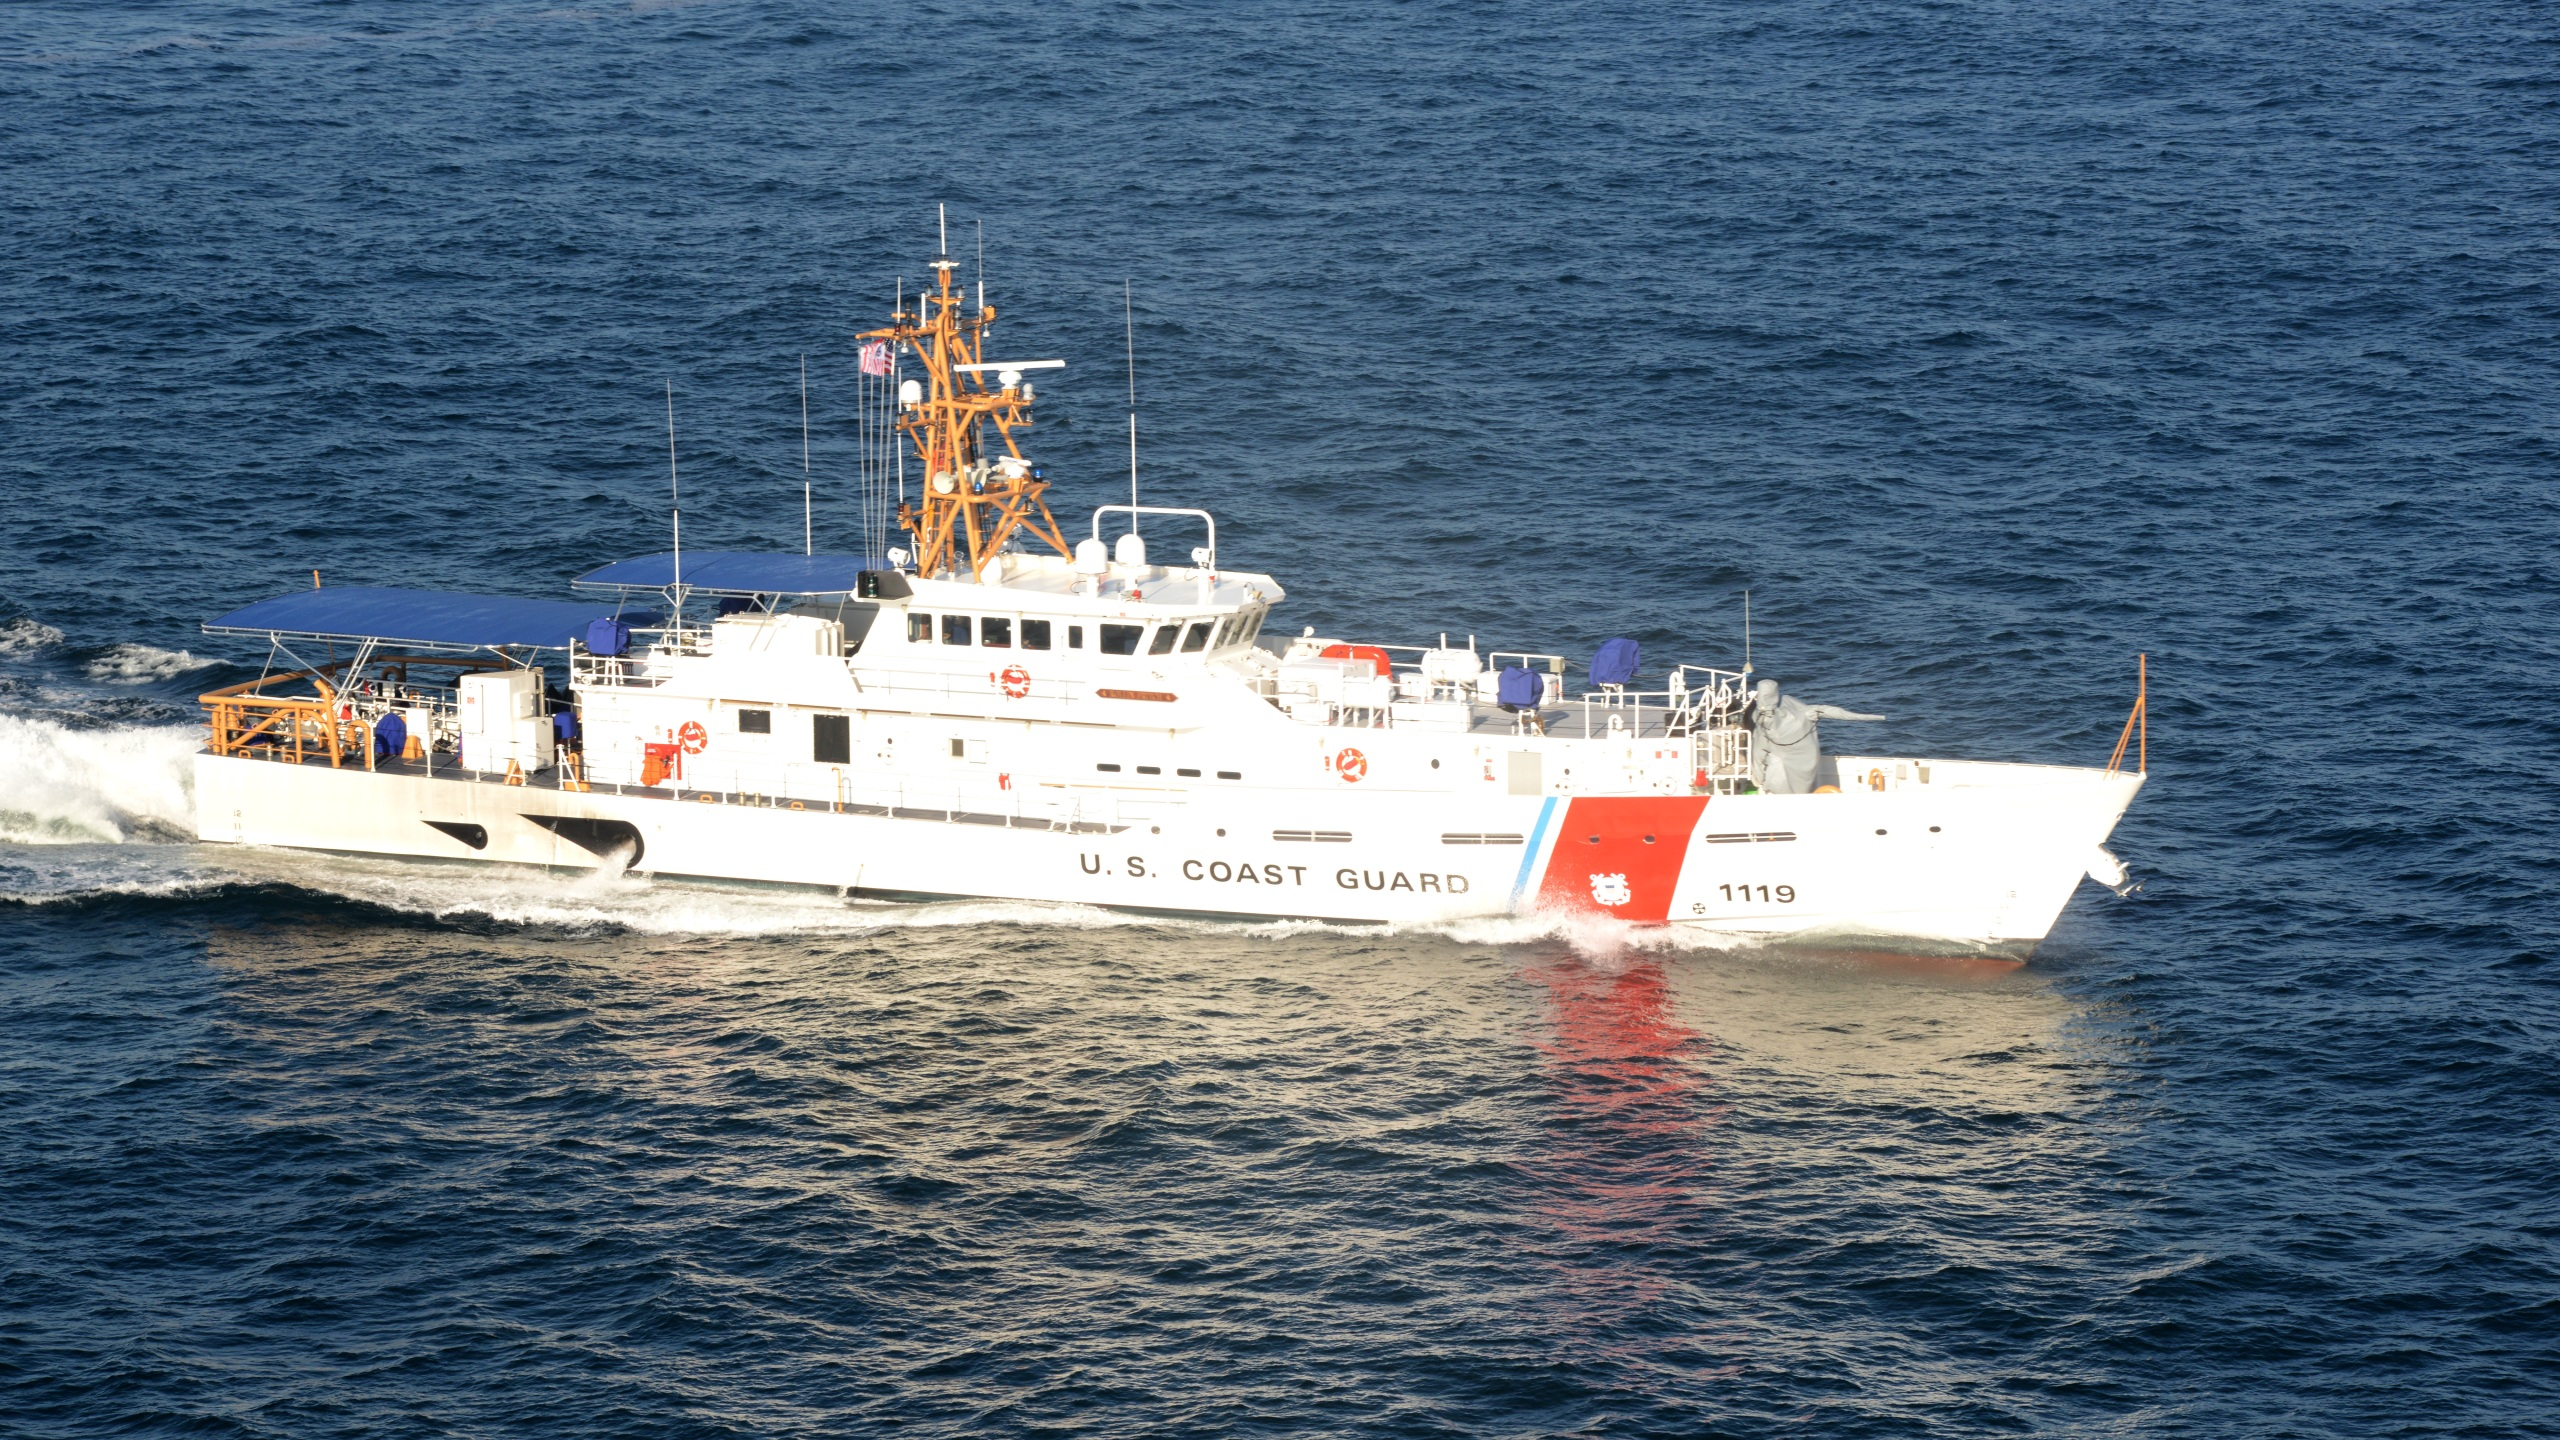 Coast Guard To Conduct Training With Blank Rounds Near Craney